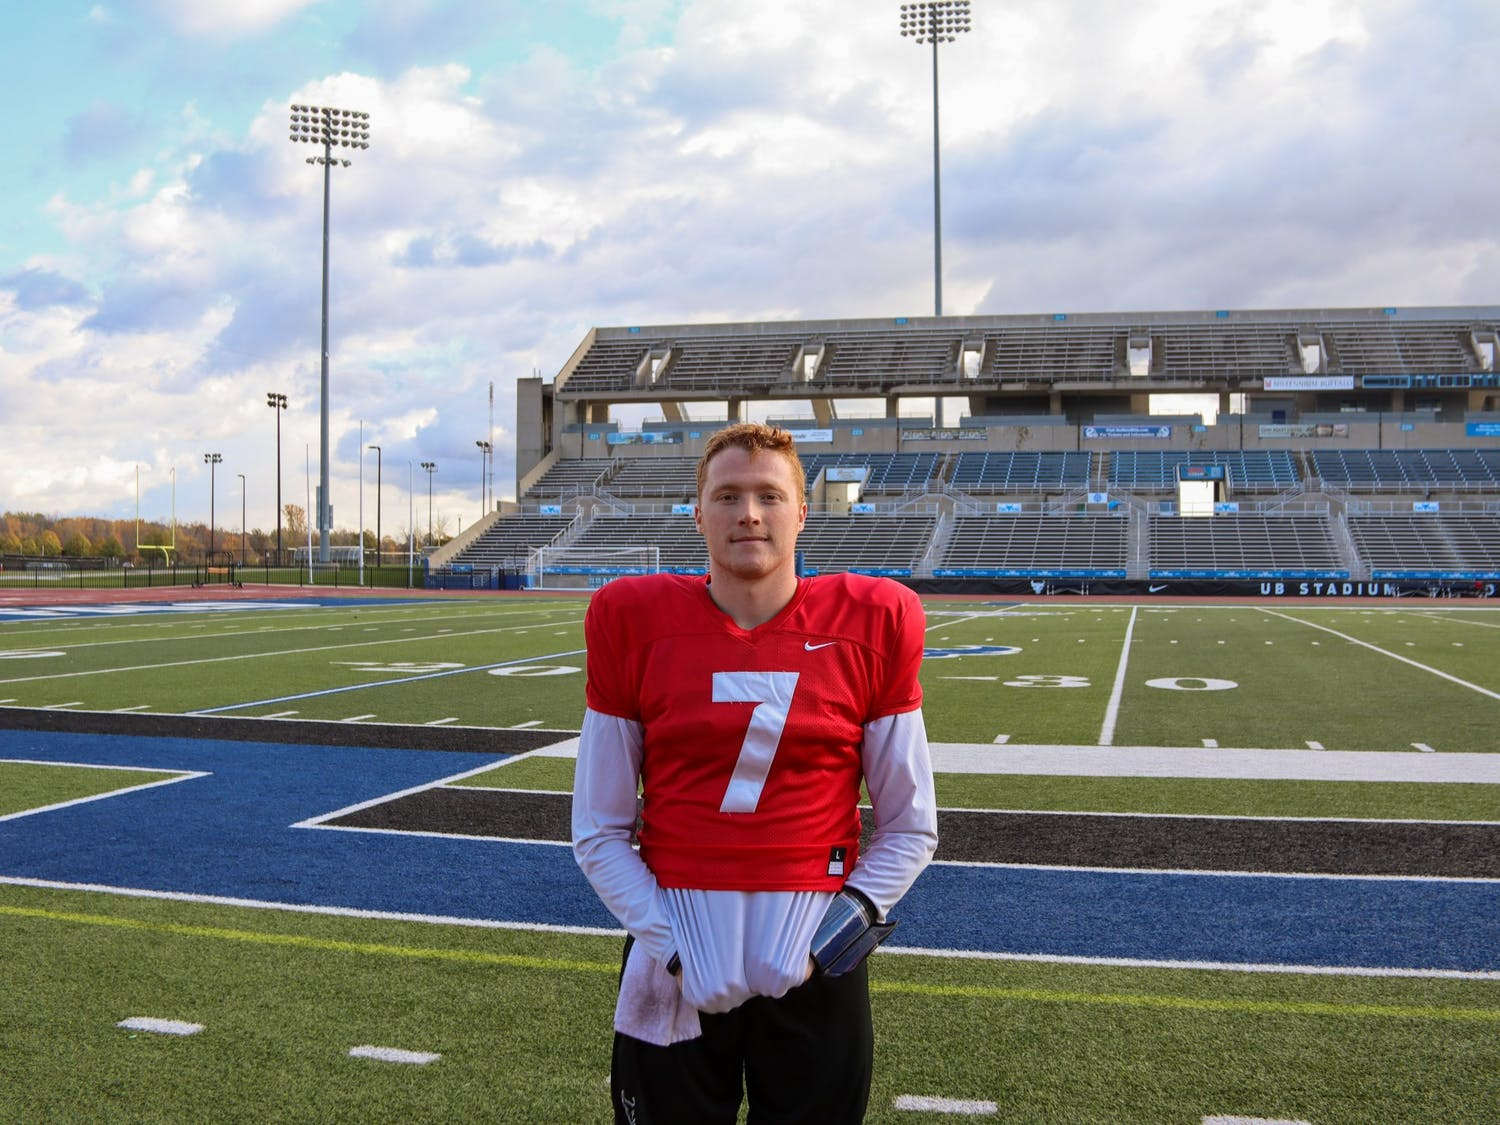 Sophomore QB Kyle Vantrease has a unique role on the UB football team. This season Kyle has found himself as the teams starting quarterback and starting punter.